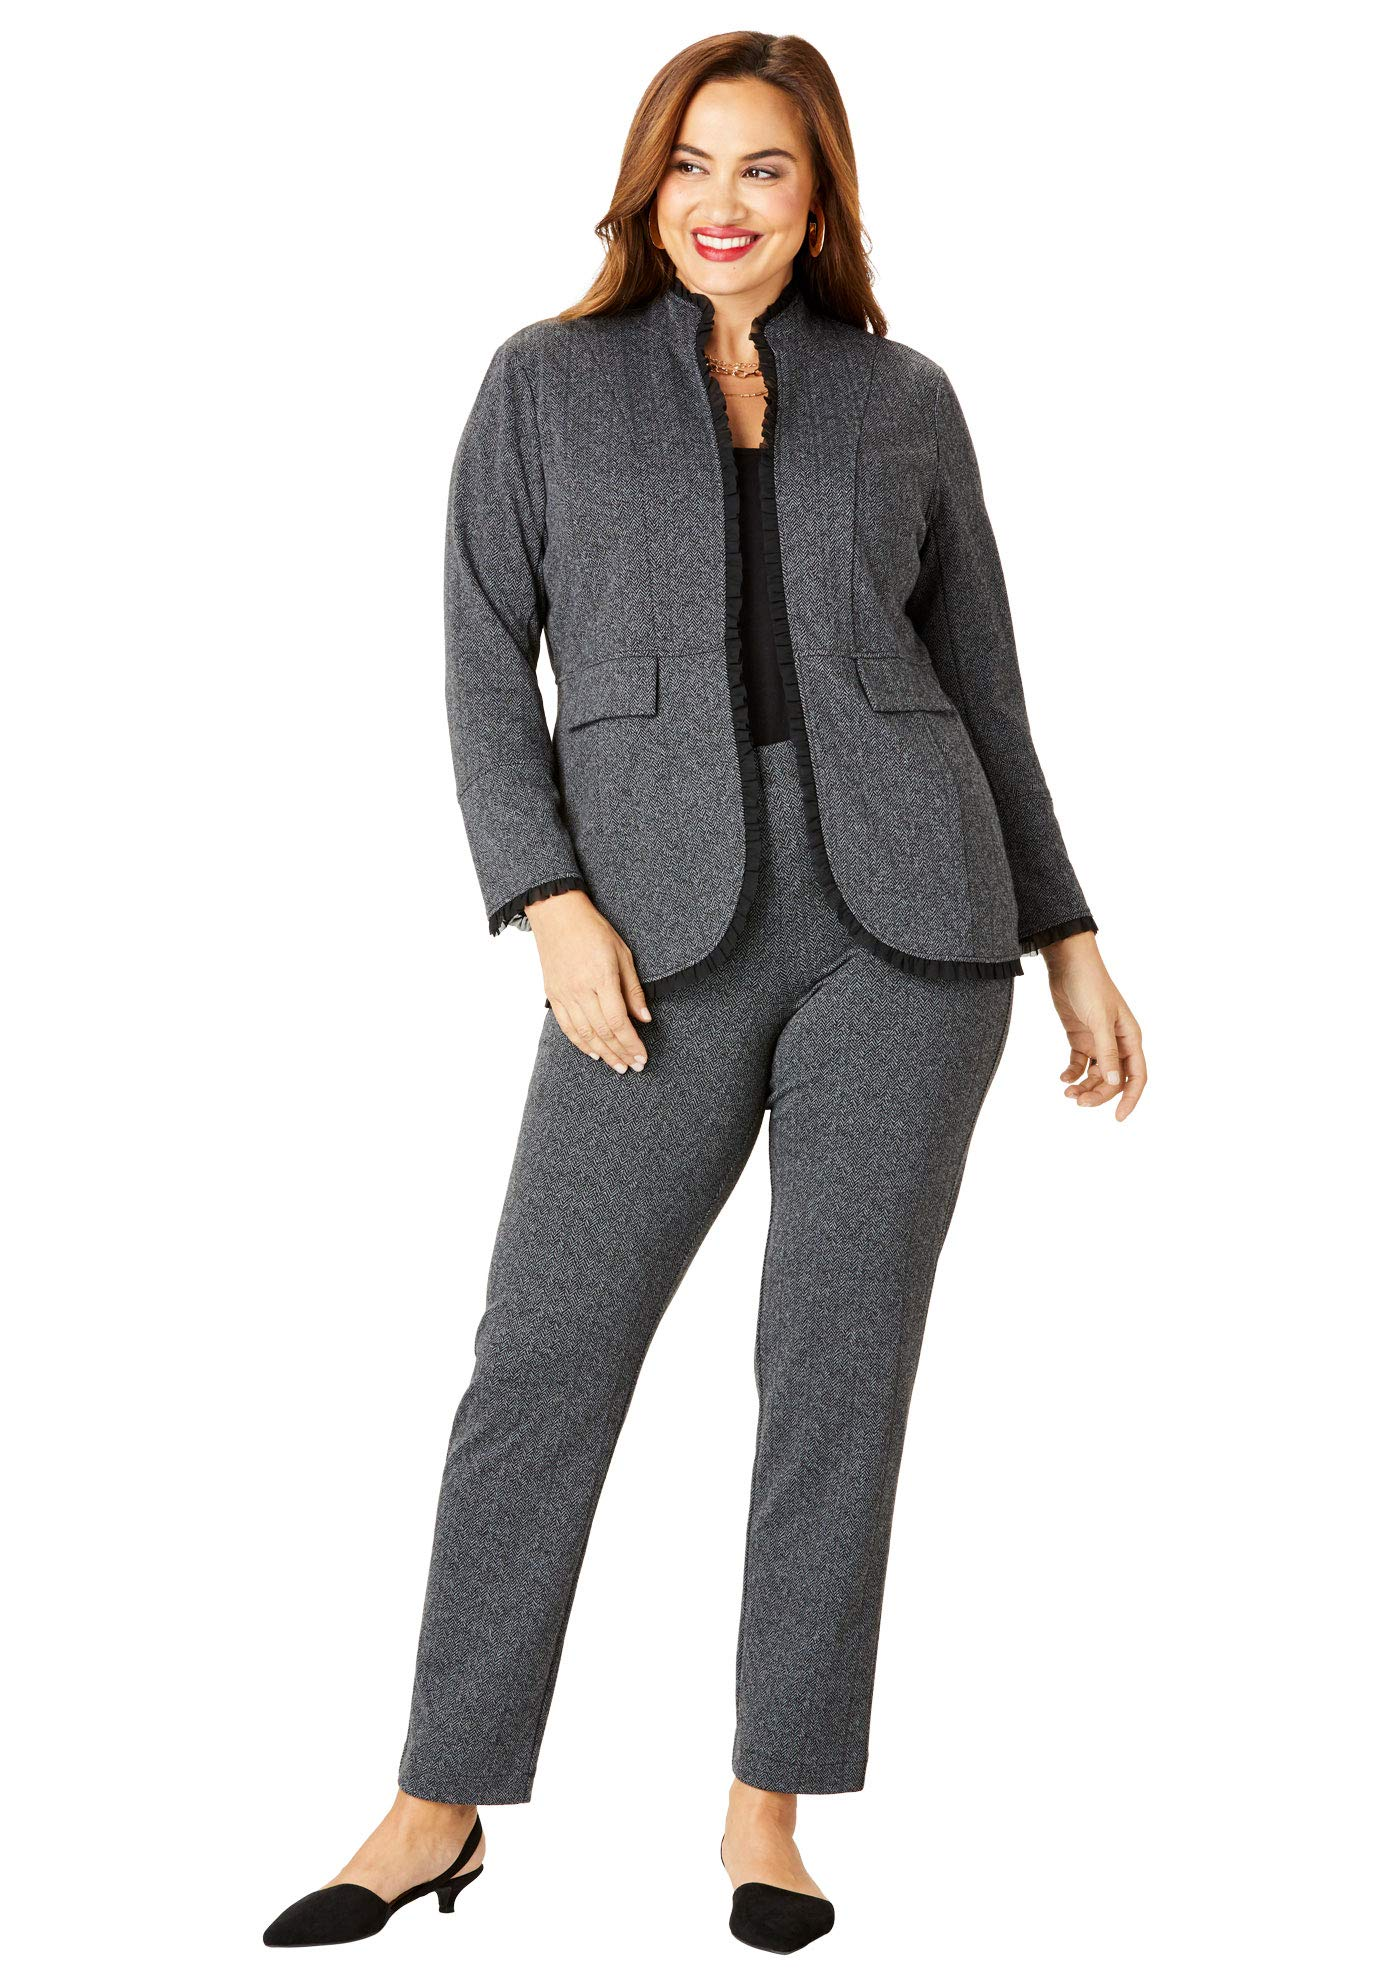 Roamans Women's Plus Size 2-Piece Ponte Pantsuit with Ruffle Trim - Black Herringbone, 18 W by Roamans